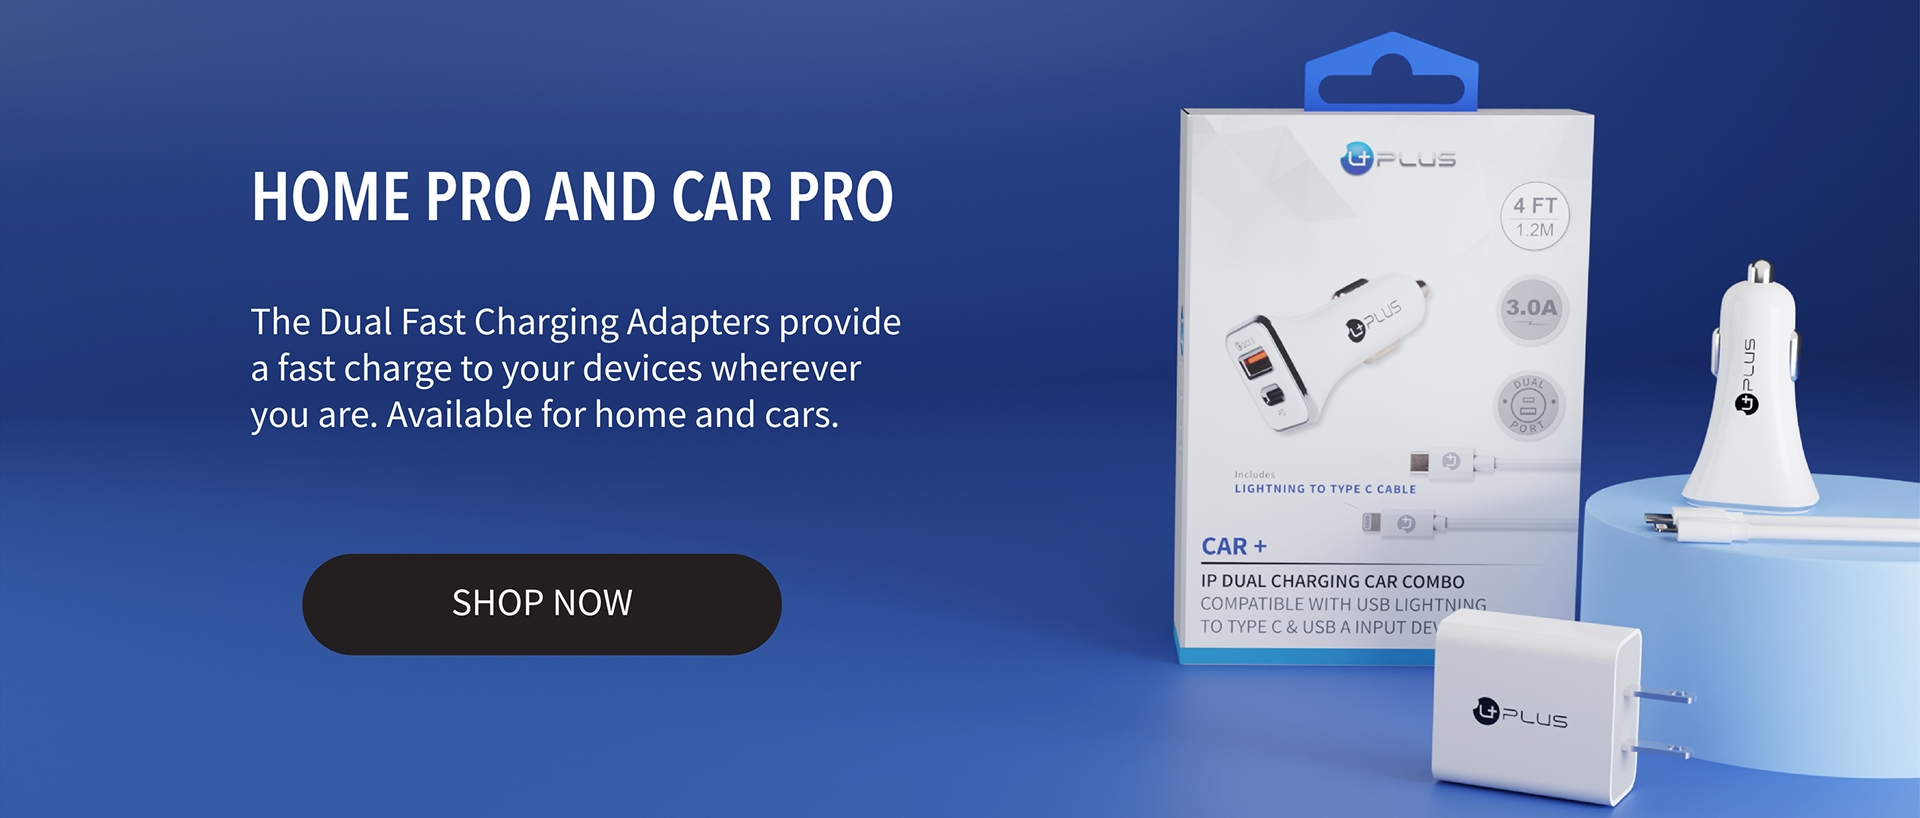 Home Pro and Car Pro Dual Chargers